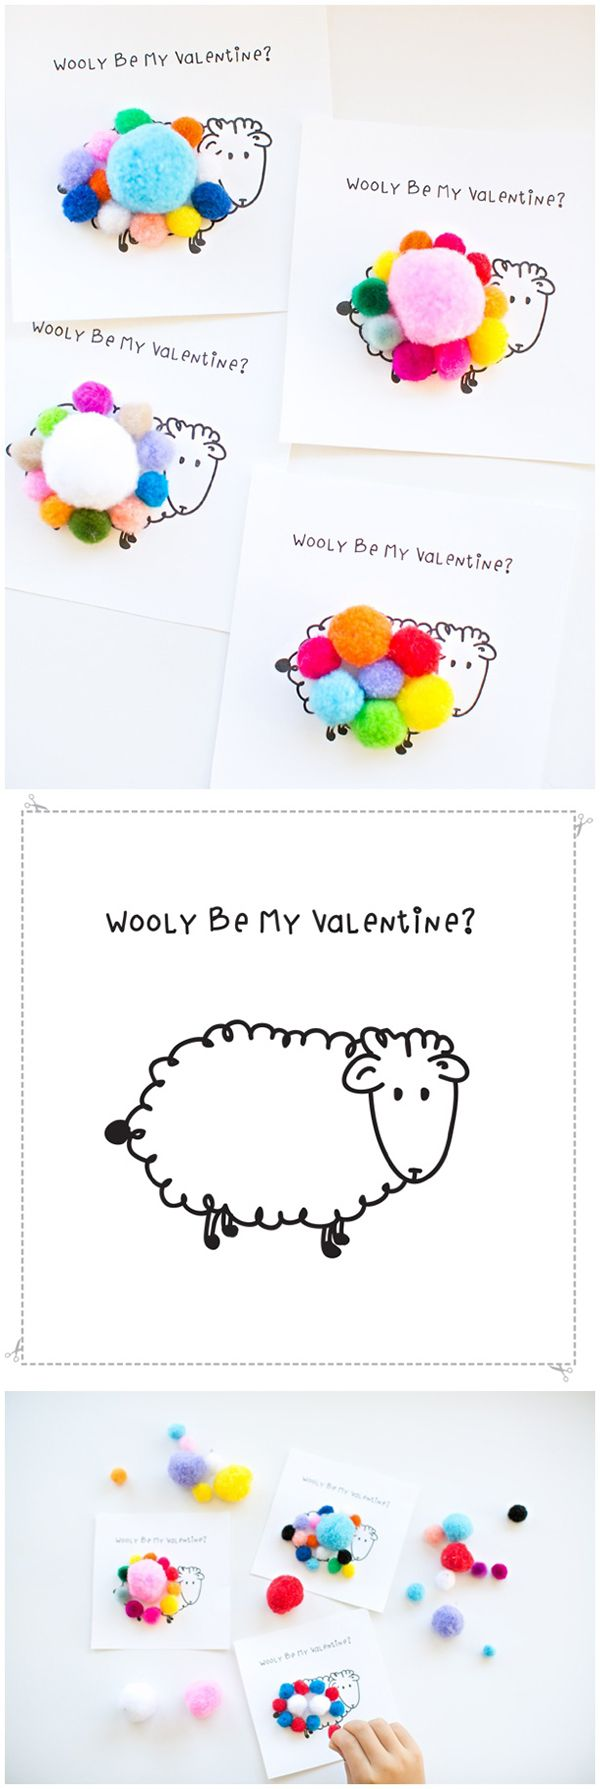 """Wooly Be My Valentine Free Printable - print out these adorable sheep cards and let kids add pom pom's on top for the """"sheep's wool."""" Such a cute, non-candy Valentine idea!"""